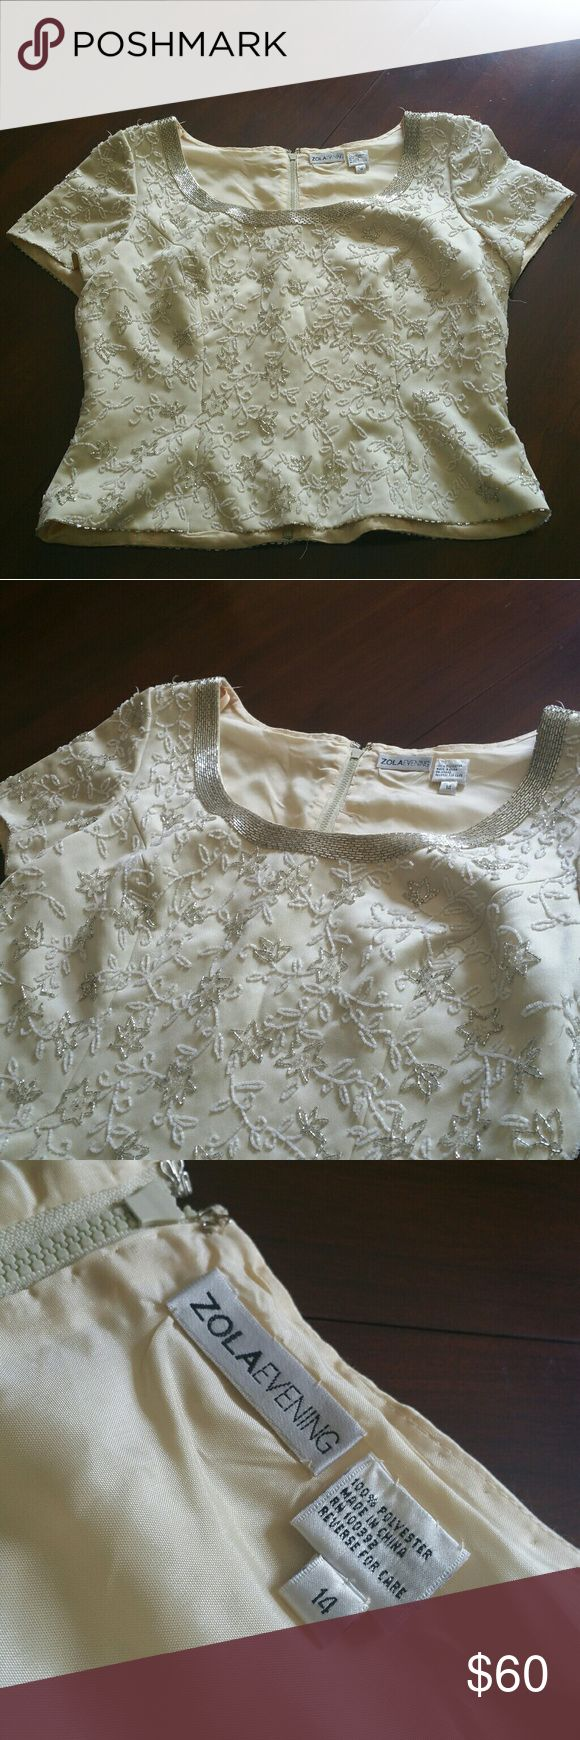 Zola Evening embroidered zip up shirt Zola Evening embroidered cream zip up shirt. Originally $200. Never worn by owner. All embroidery is in tact. We are up for bargains. Zola Evening Tops Blouses